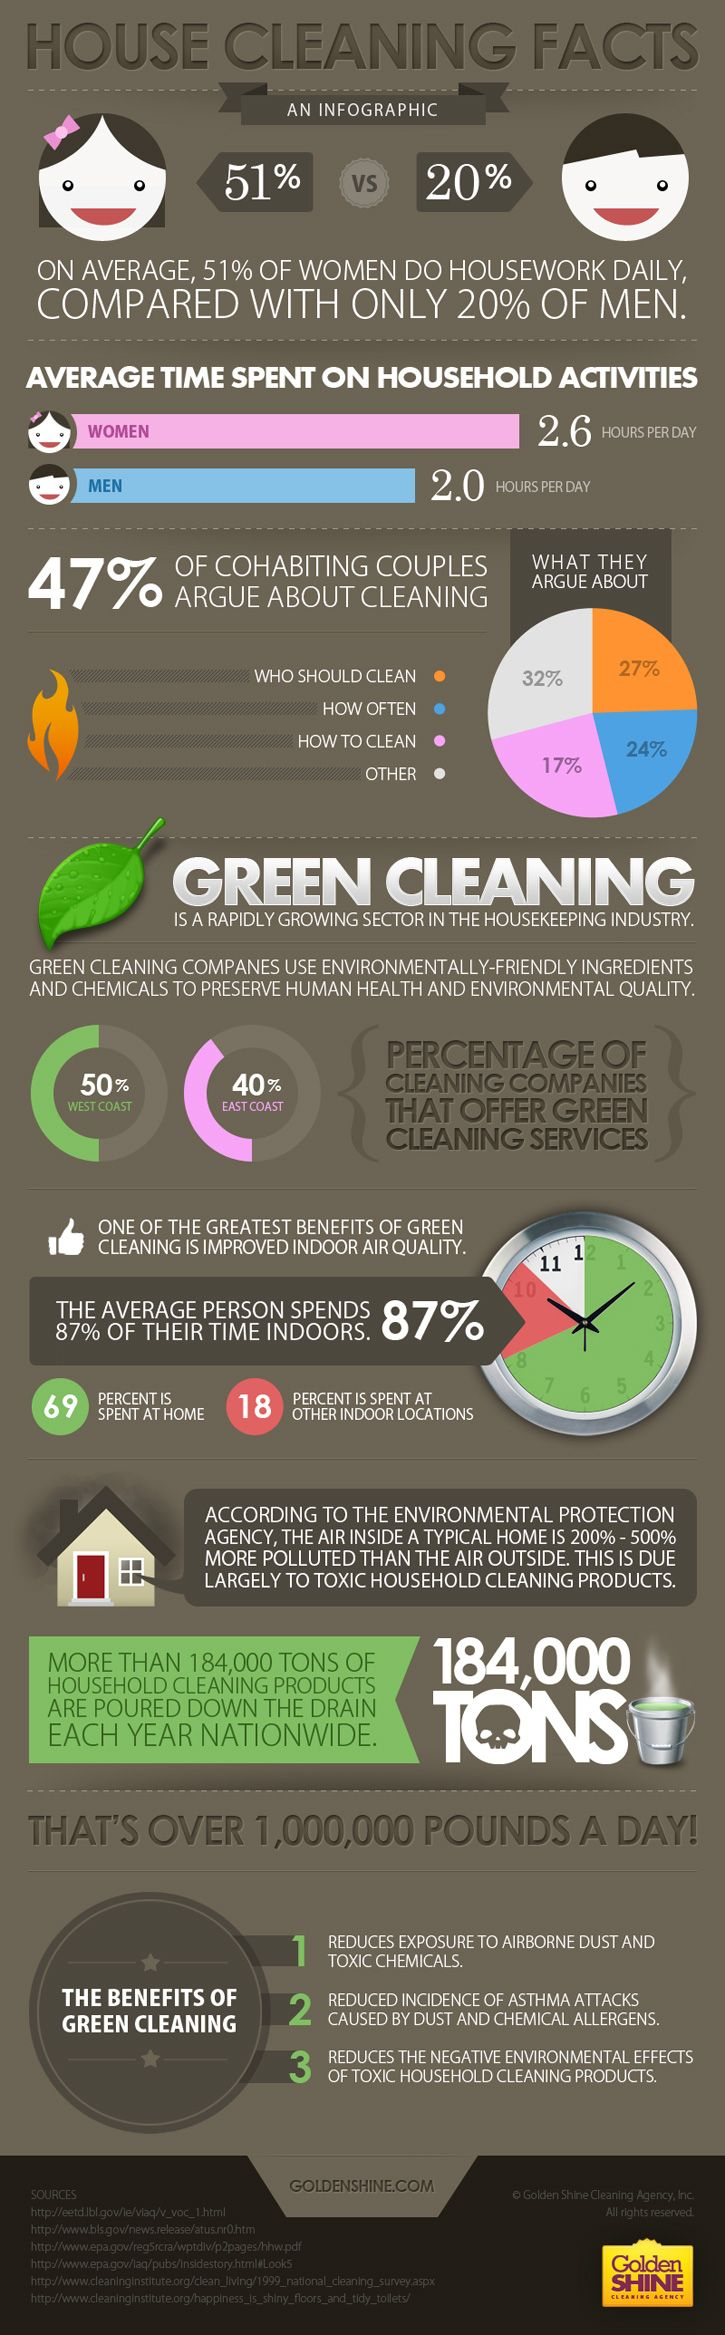 best catchy cleaning slogans and creative taglines house cleaning facts and green cleaning 37 best catchy cleaning slogans and creative taglines